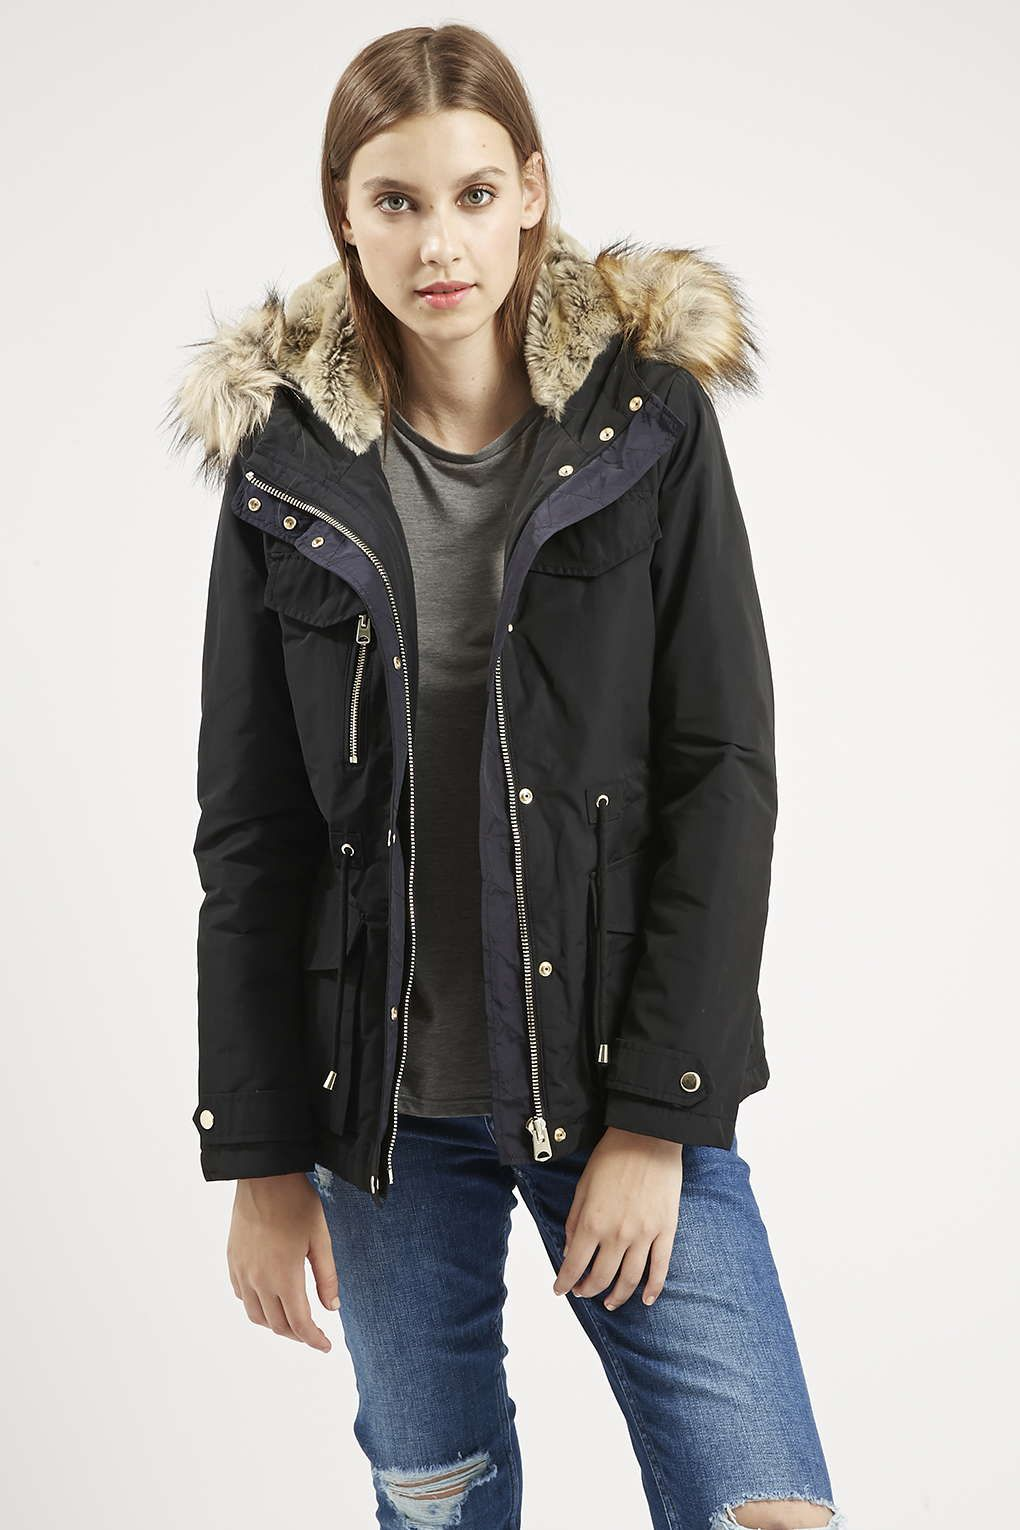 PETITE Jaxson Faux Fur Short Parka - Jackets & Coats - Clothing ...